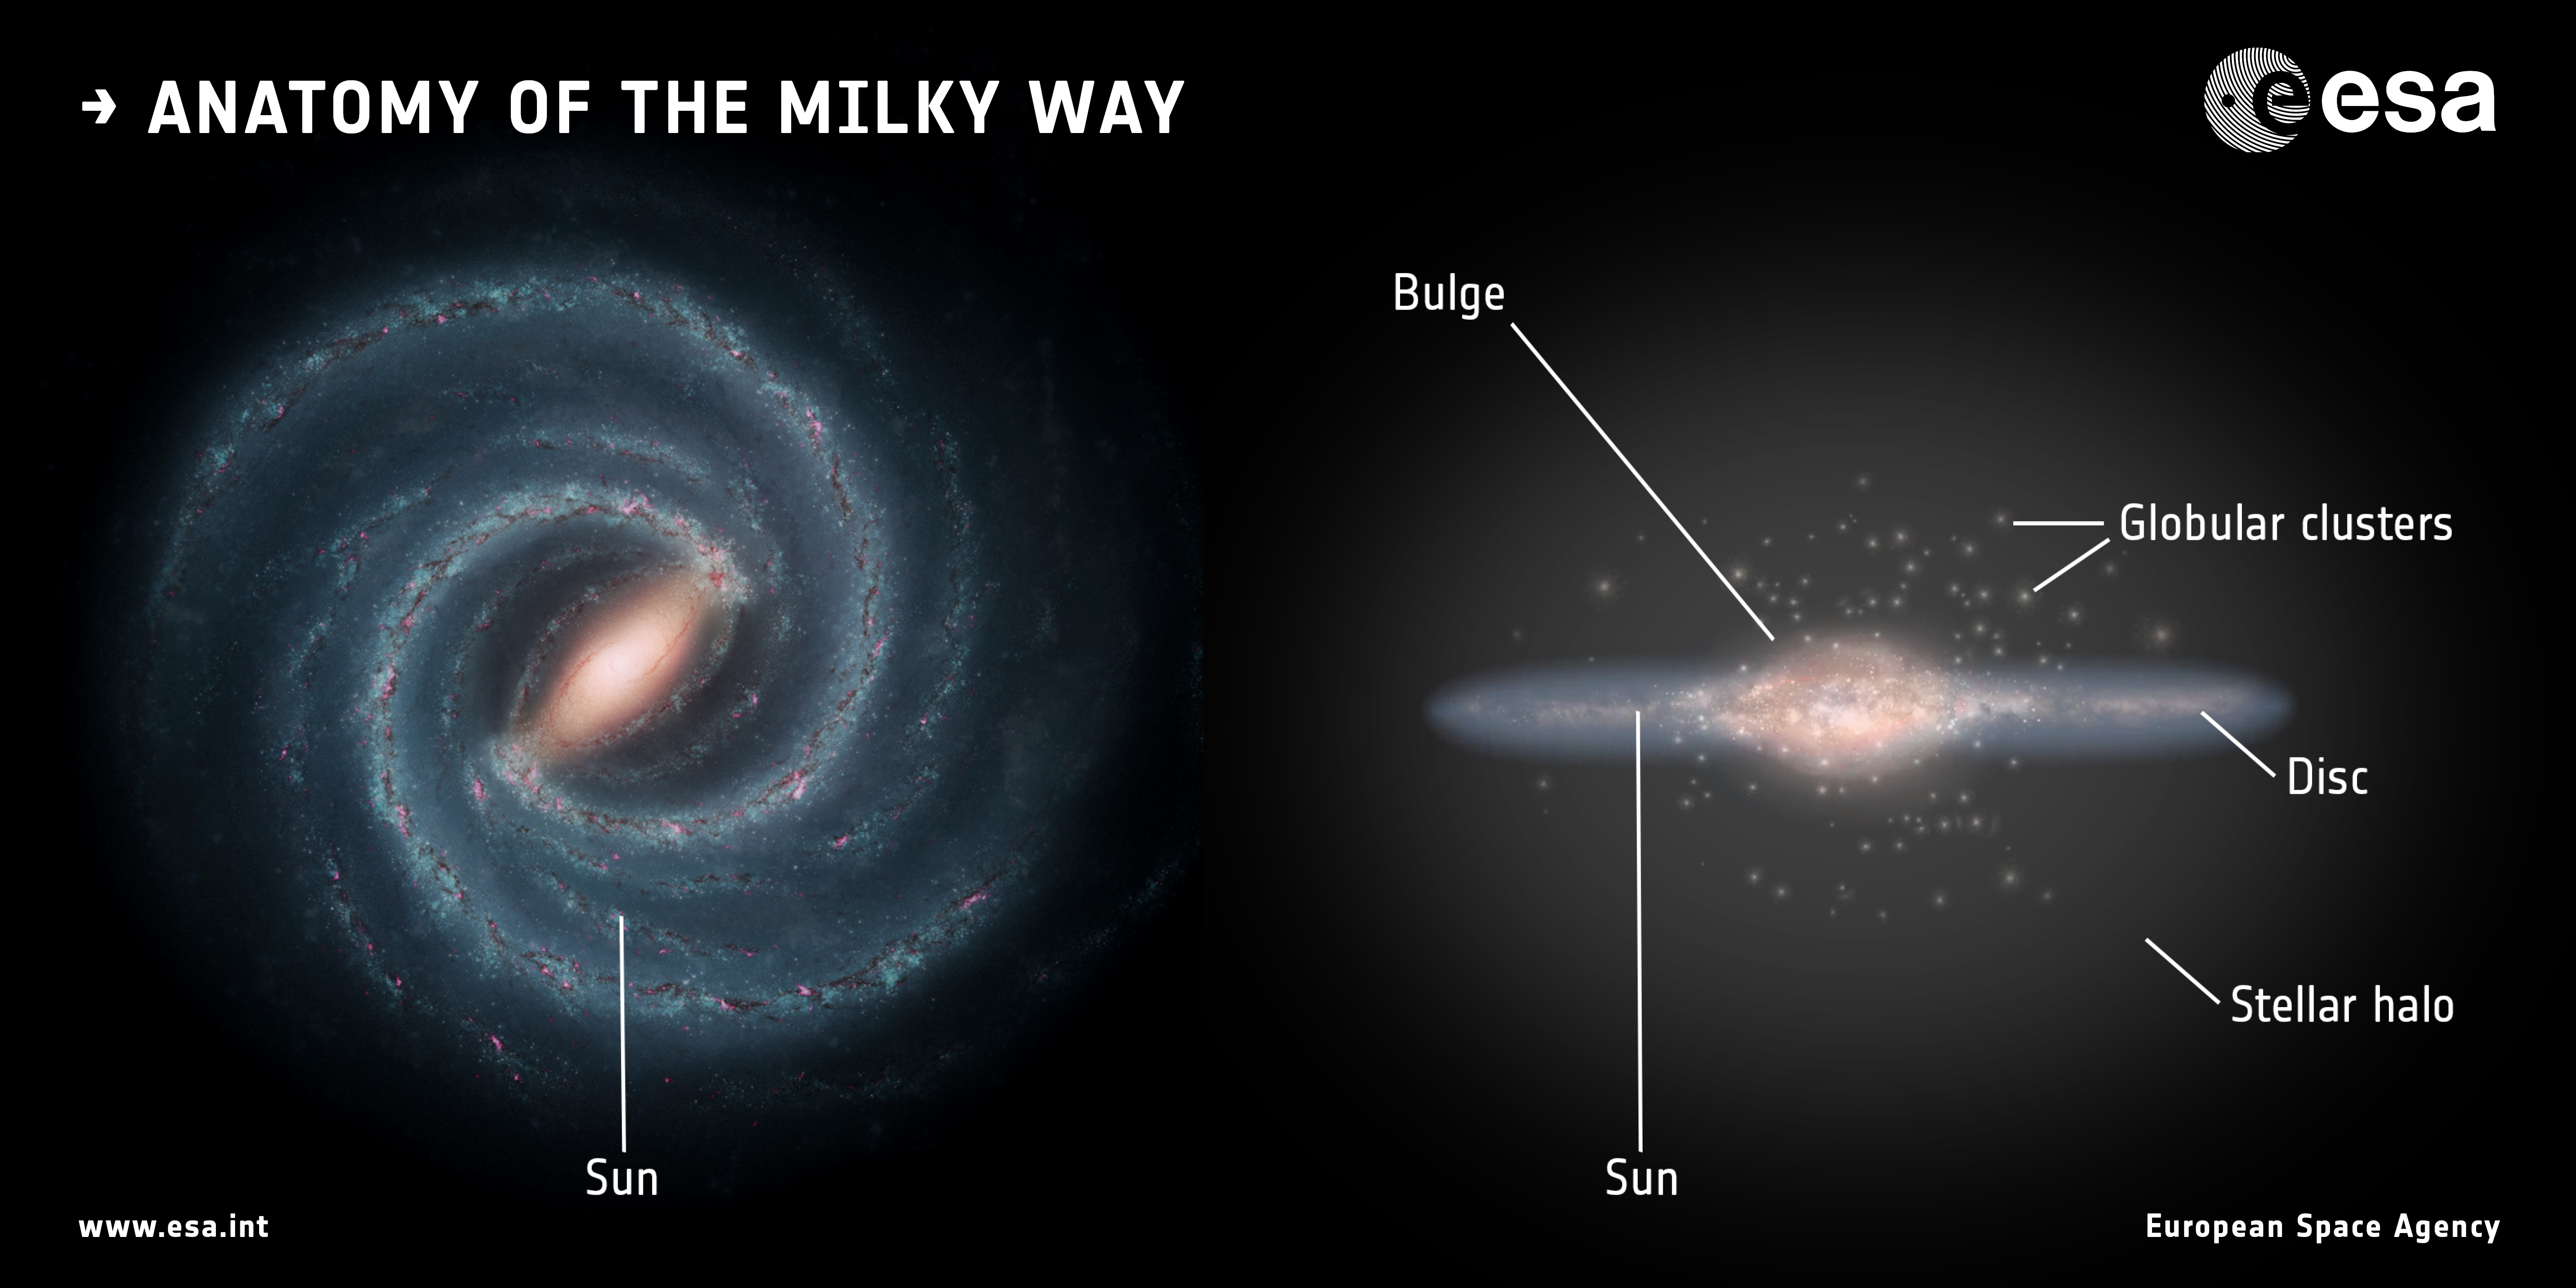 Space in Images - 2016 - 09 - Anatomy of the Milky Way